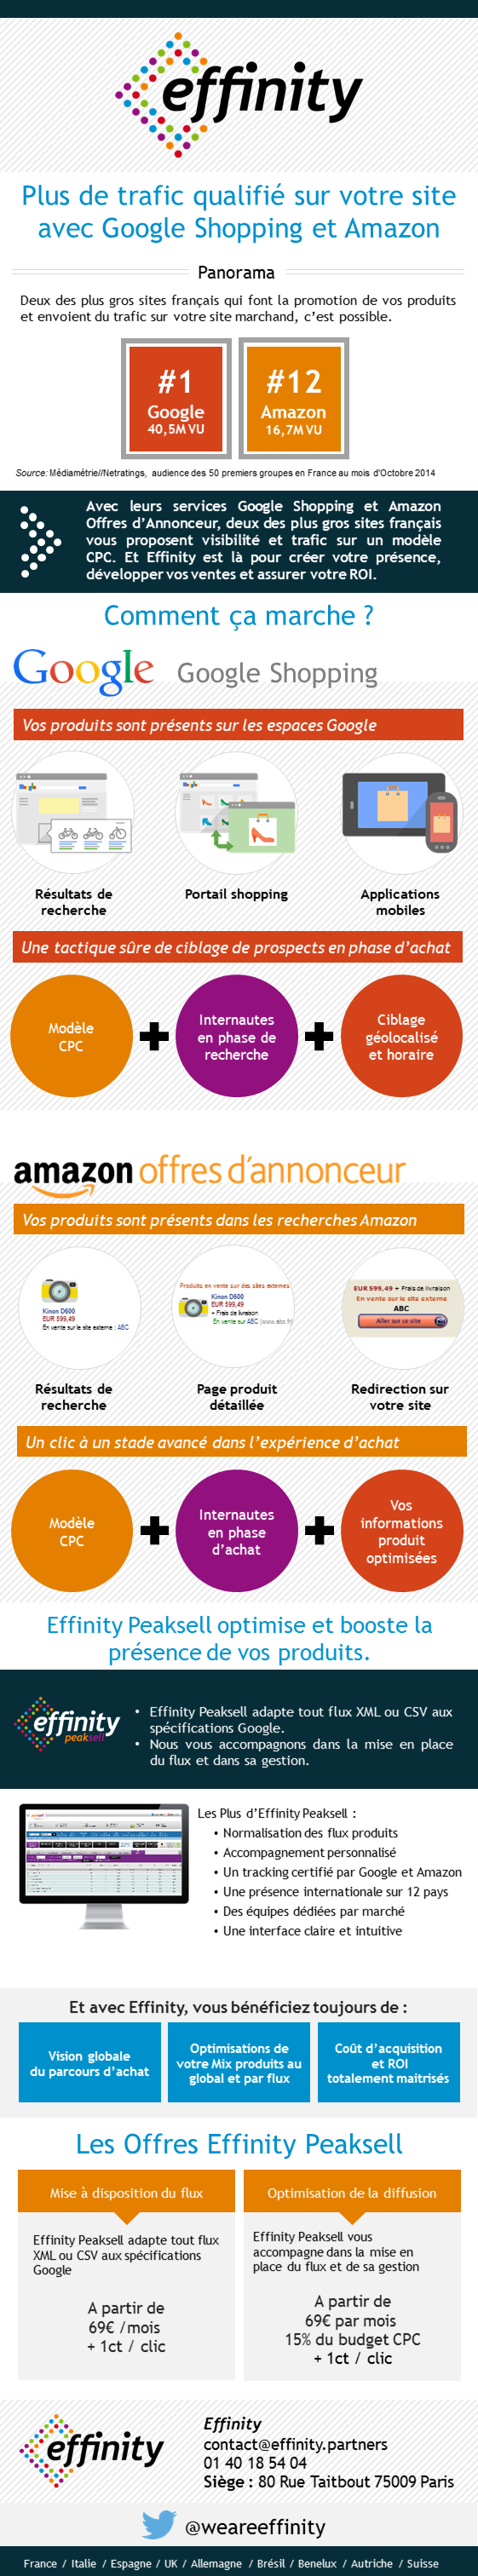 Effinity peaksell google shopping amazon offre annonceur